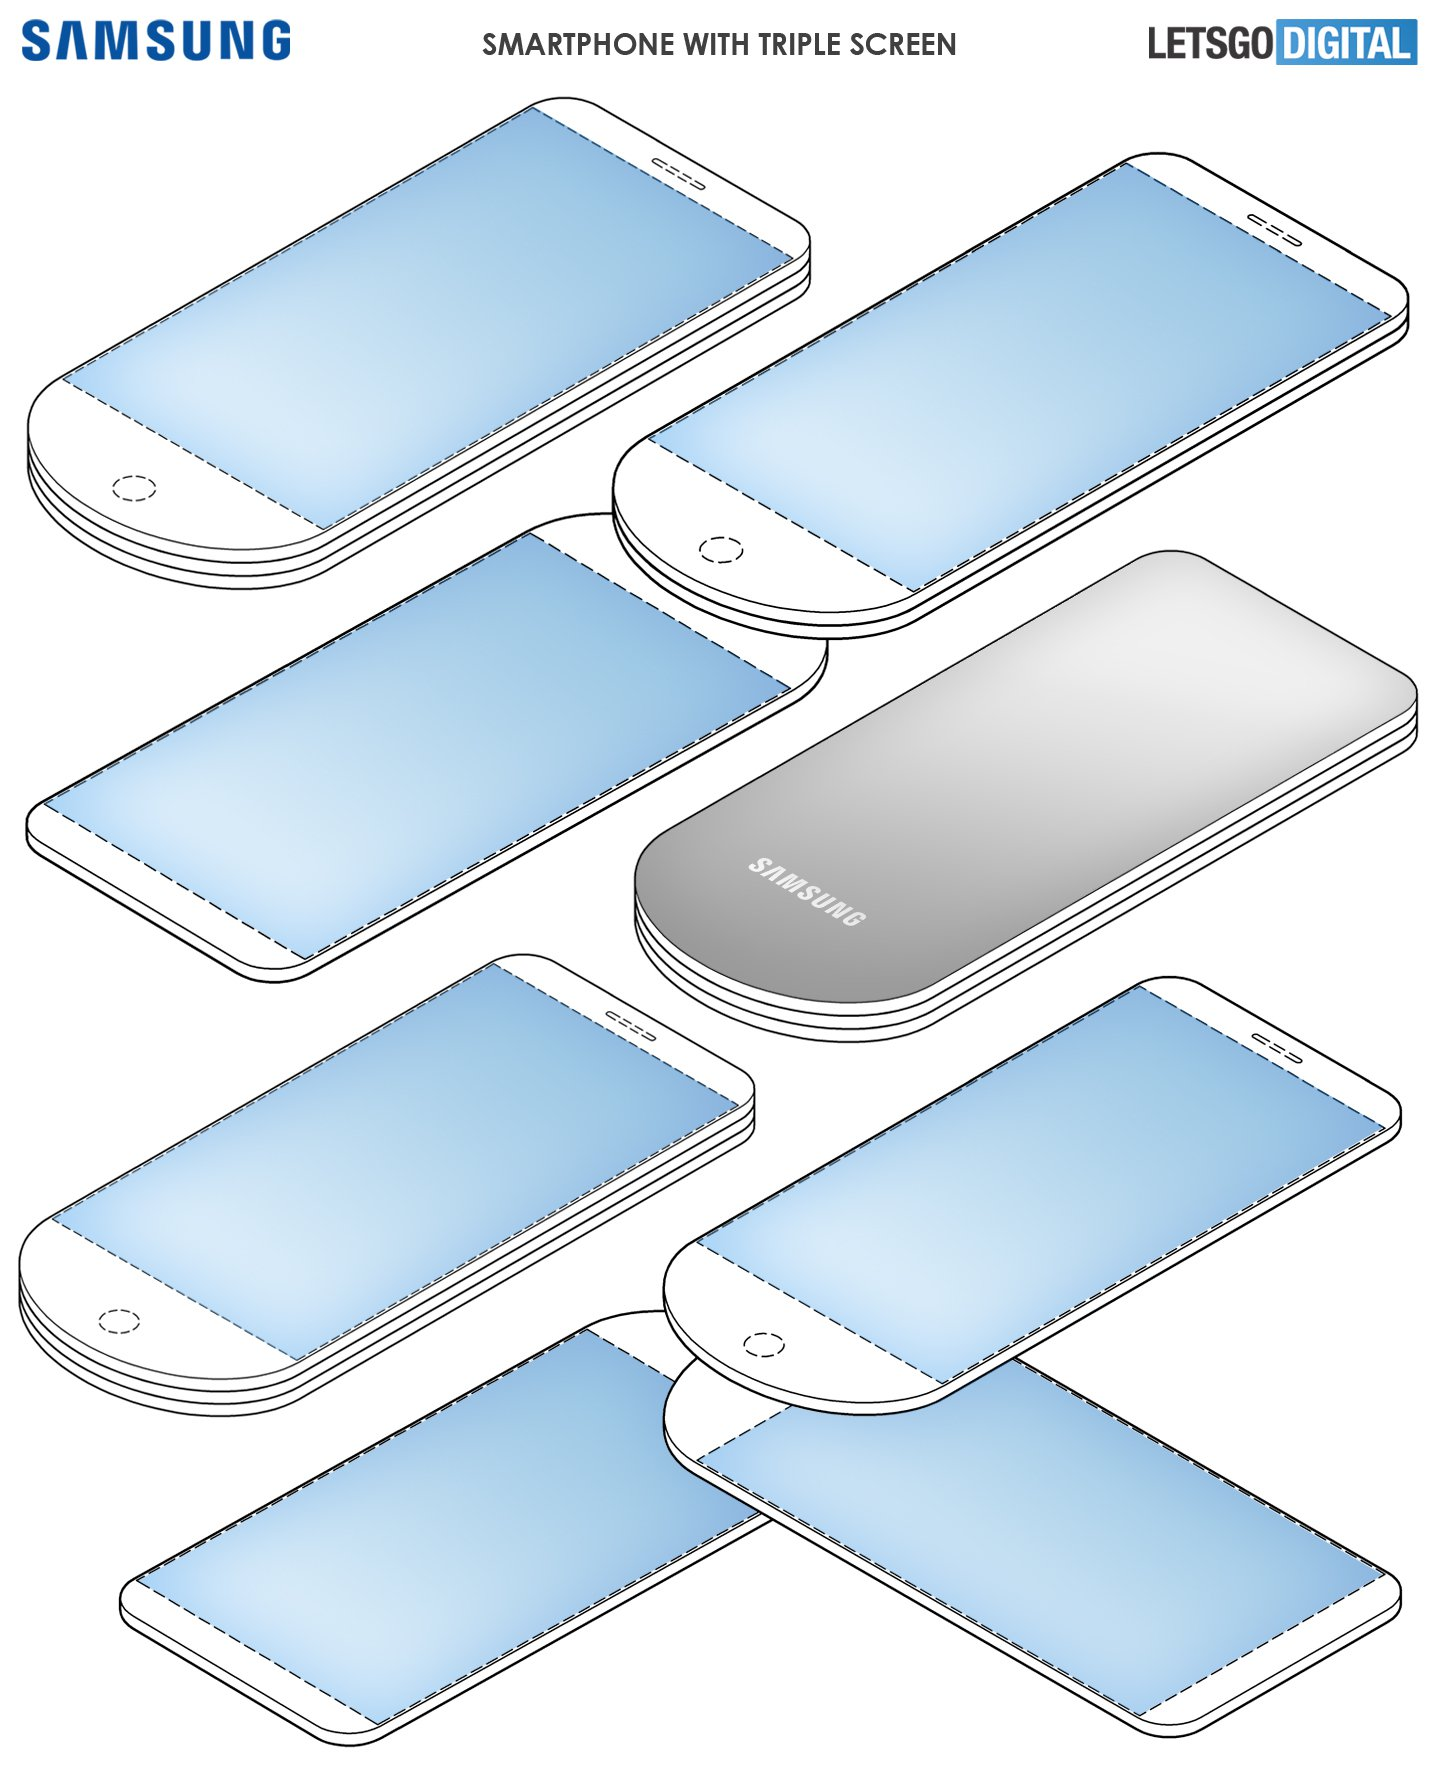 Samsung Triple Display Patent